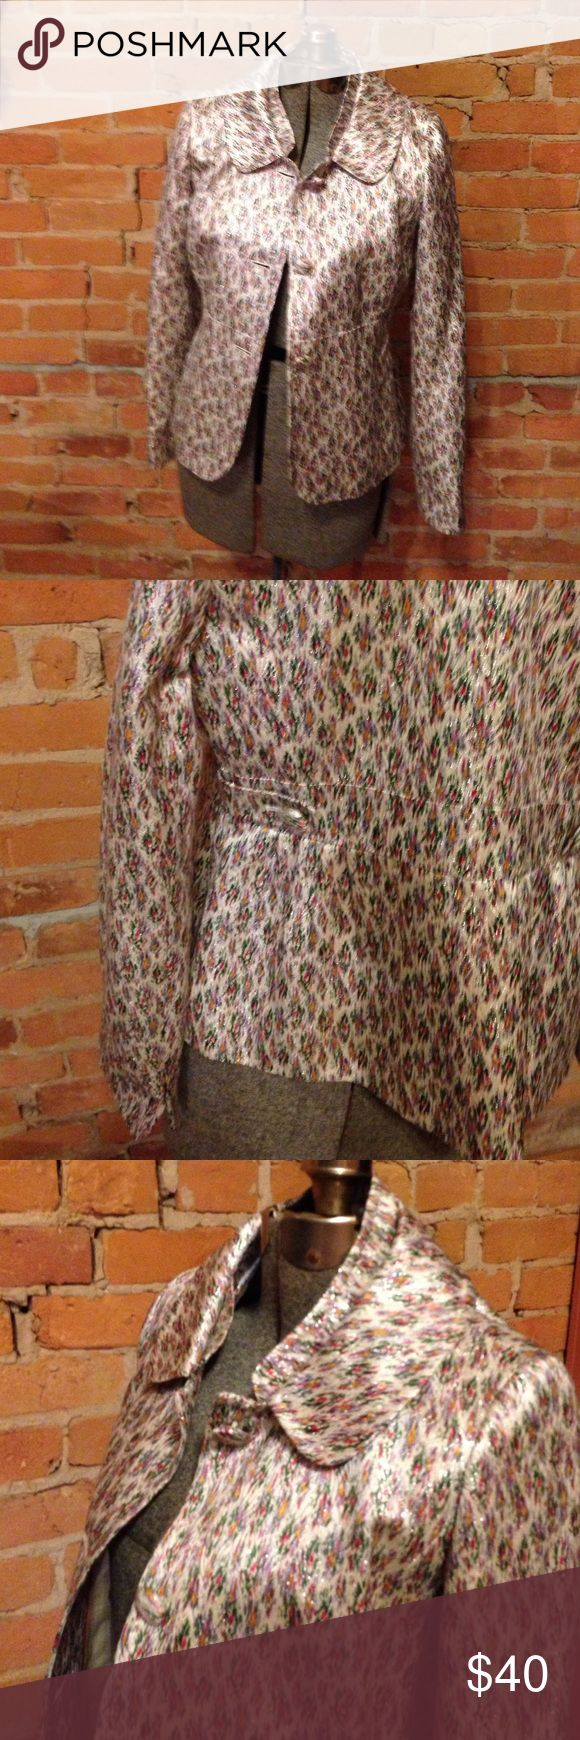 J. Crew Collection Spring Multi Color Shimmer Coat From the J. Crew Collection Spring 09 line. Multi color pattern with green, purple, mustard on a cream base intertwined with shimmery silver. Gorgeous pattern and cut. Reminds me of high, bright fashion you would see in shows like Gossip Girl. Size 8. J. Crew Jackets & Coats